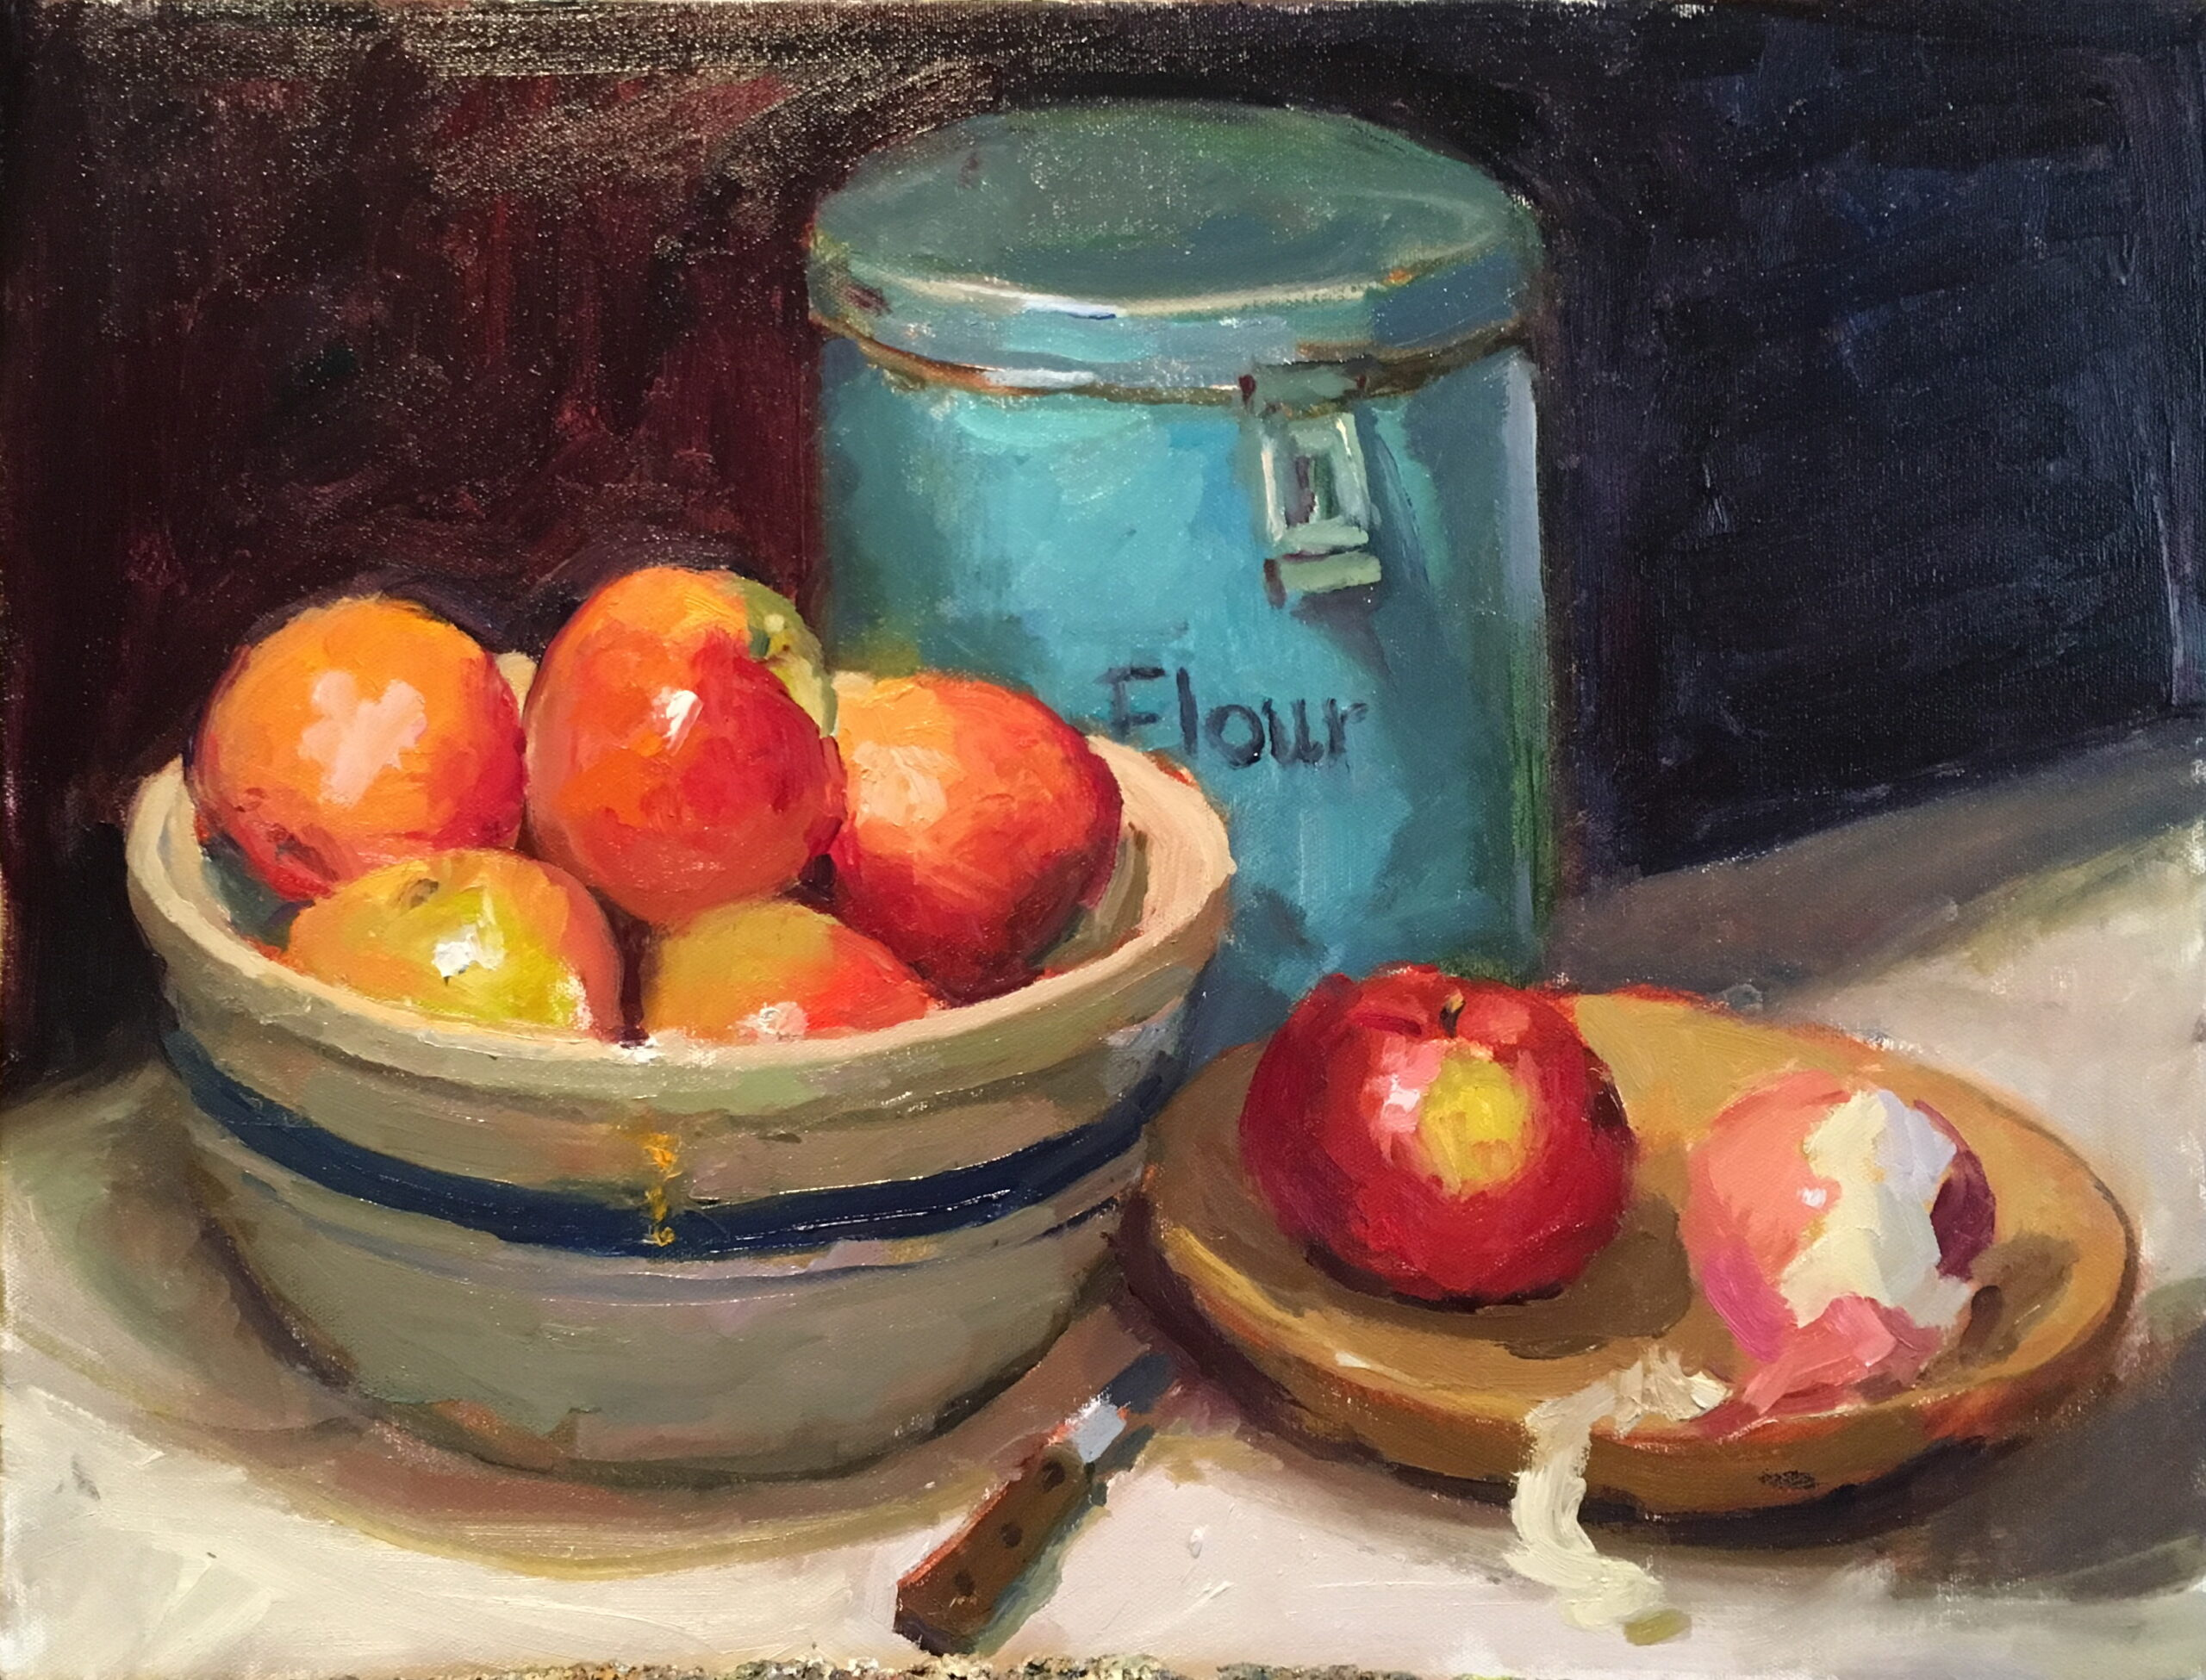 Apple Pie, Oil on Canvas, 16 x 20 Inches, by Susan Grisell, $550